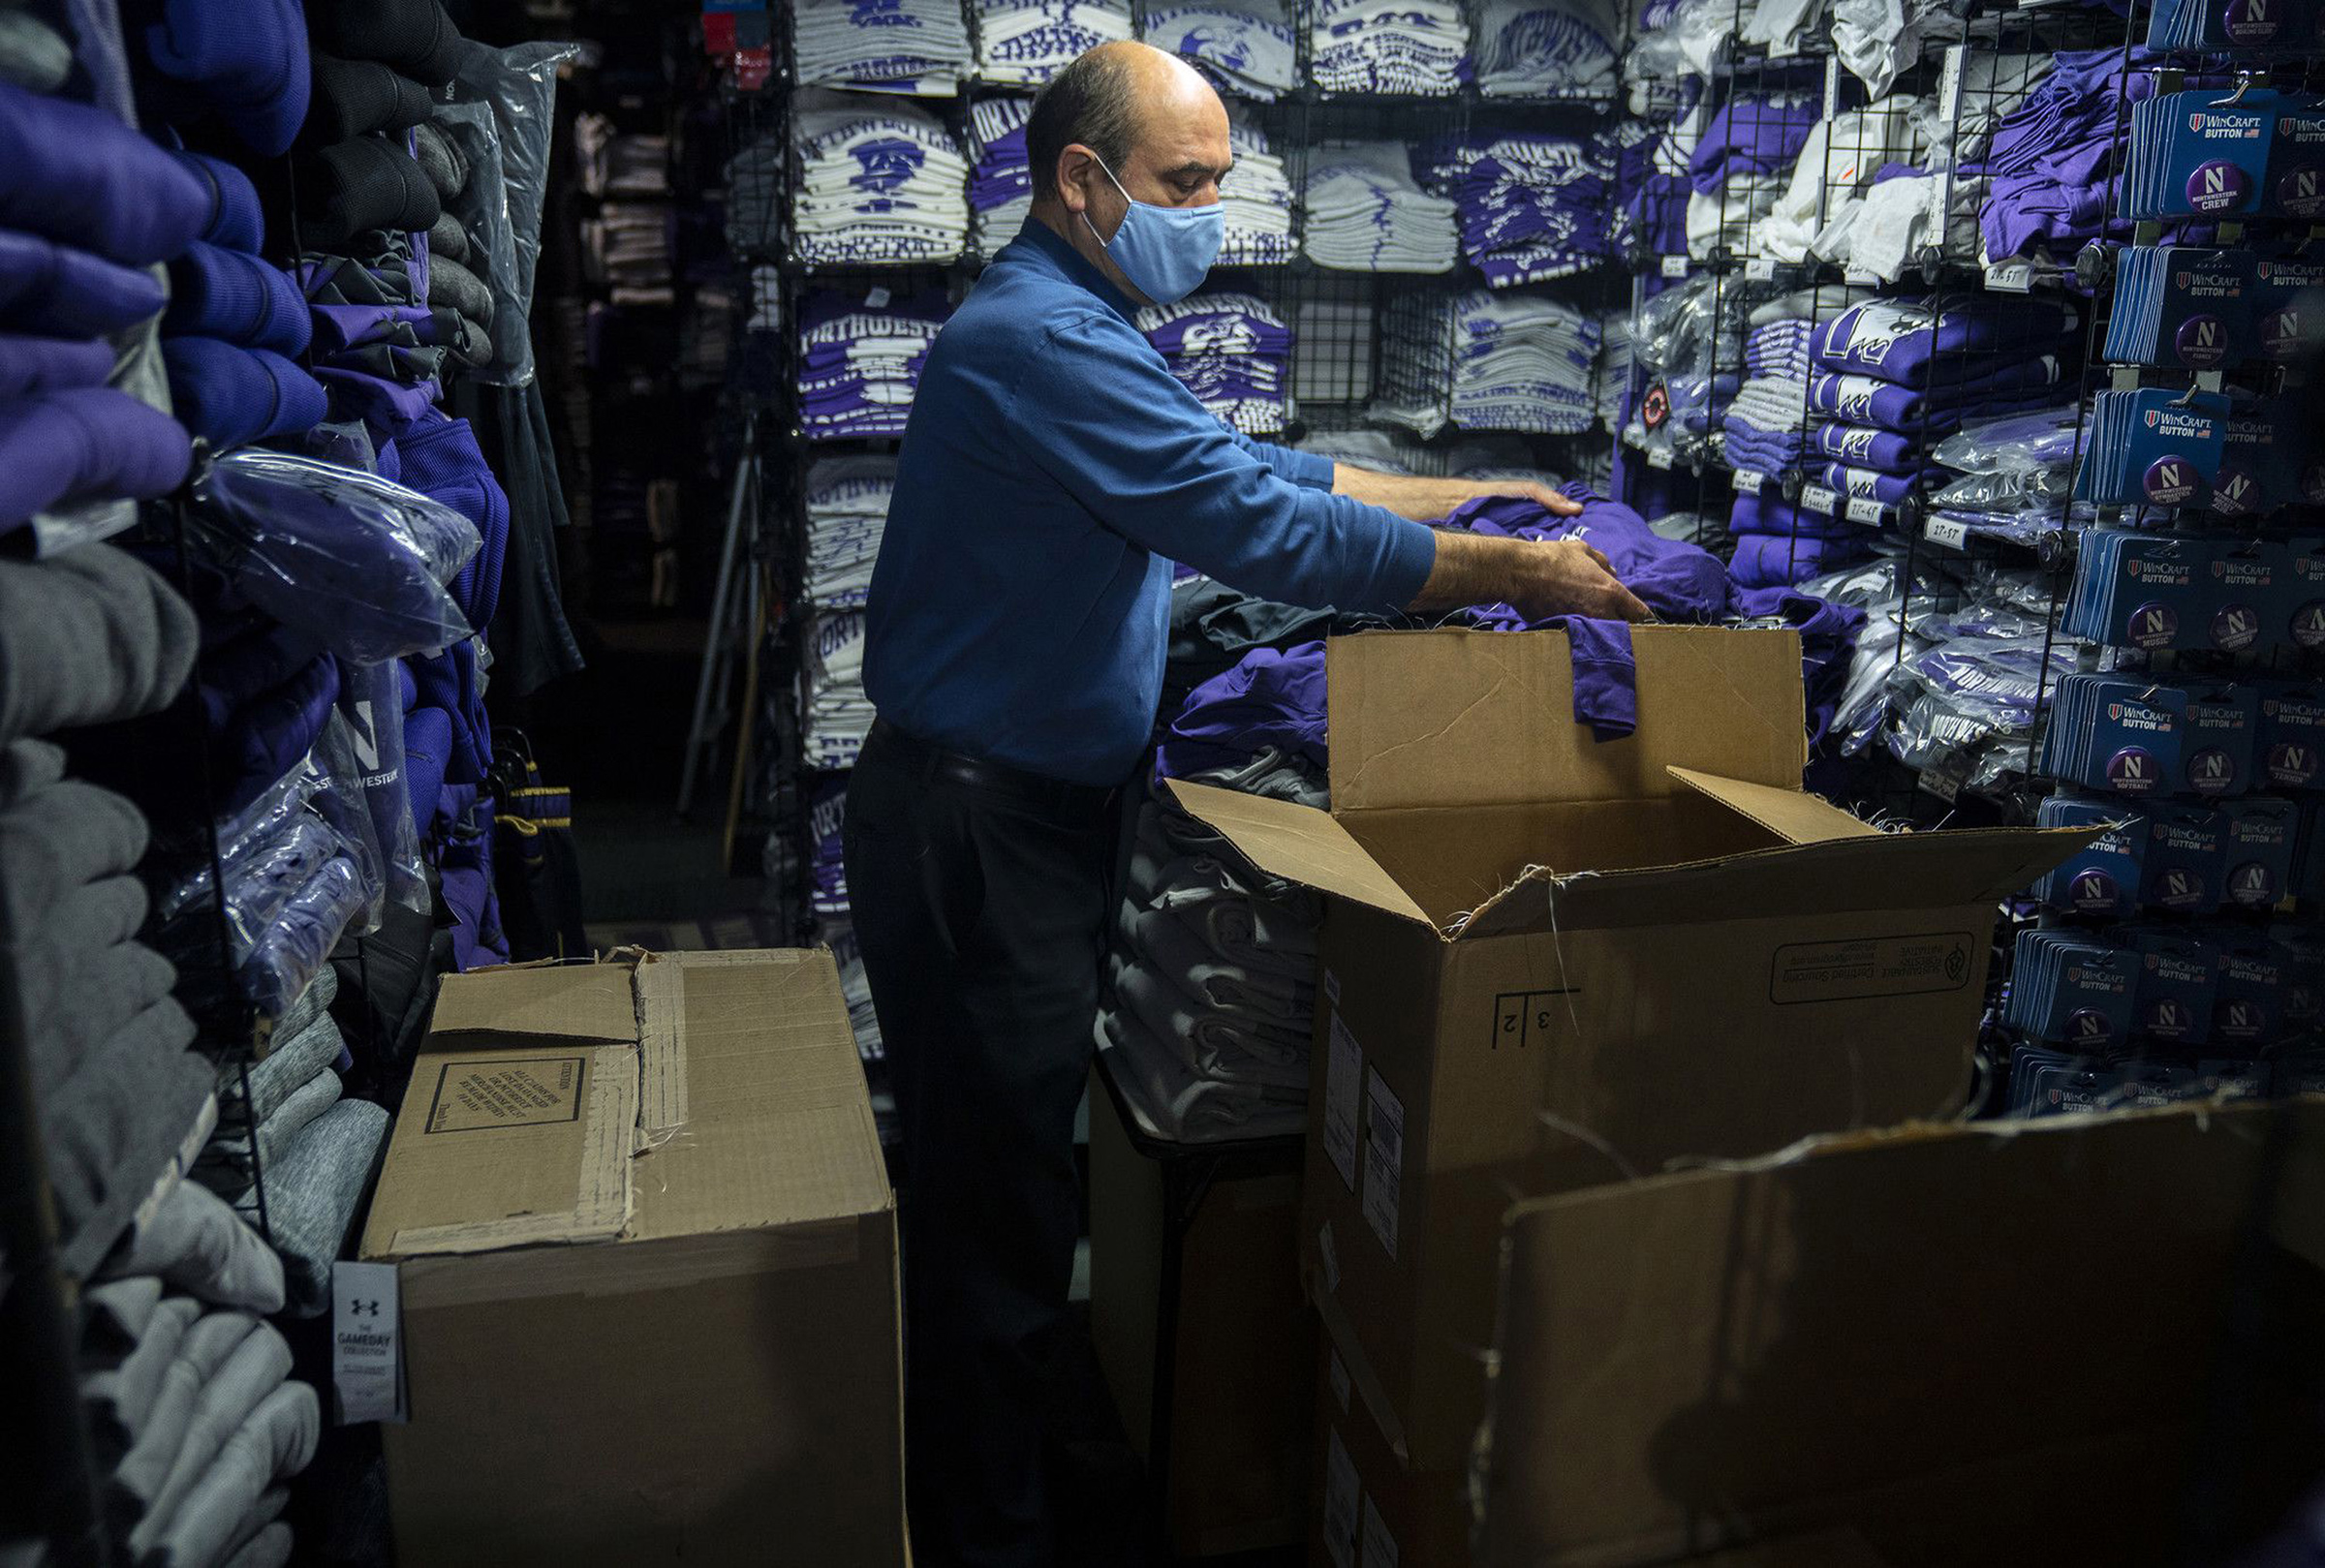 David Haghnaji, owner of Campus Gear in downtown Evanston, Ill., stocks another of his locations—The Locker Room, across from Ryan Field—with new Northwestern gear on Oct. 15, 2020.